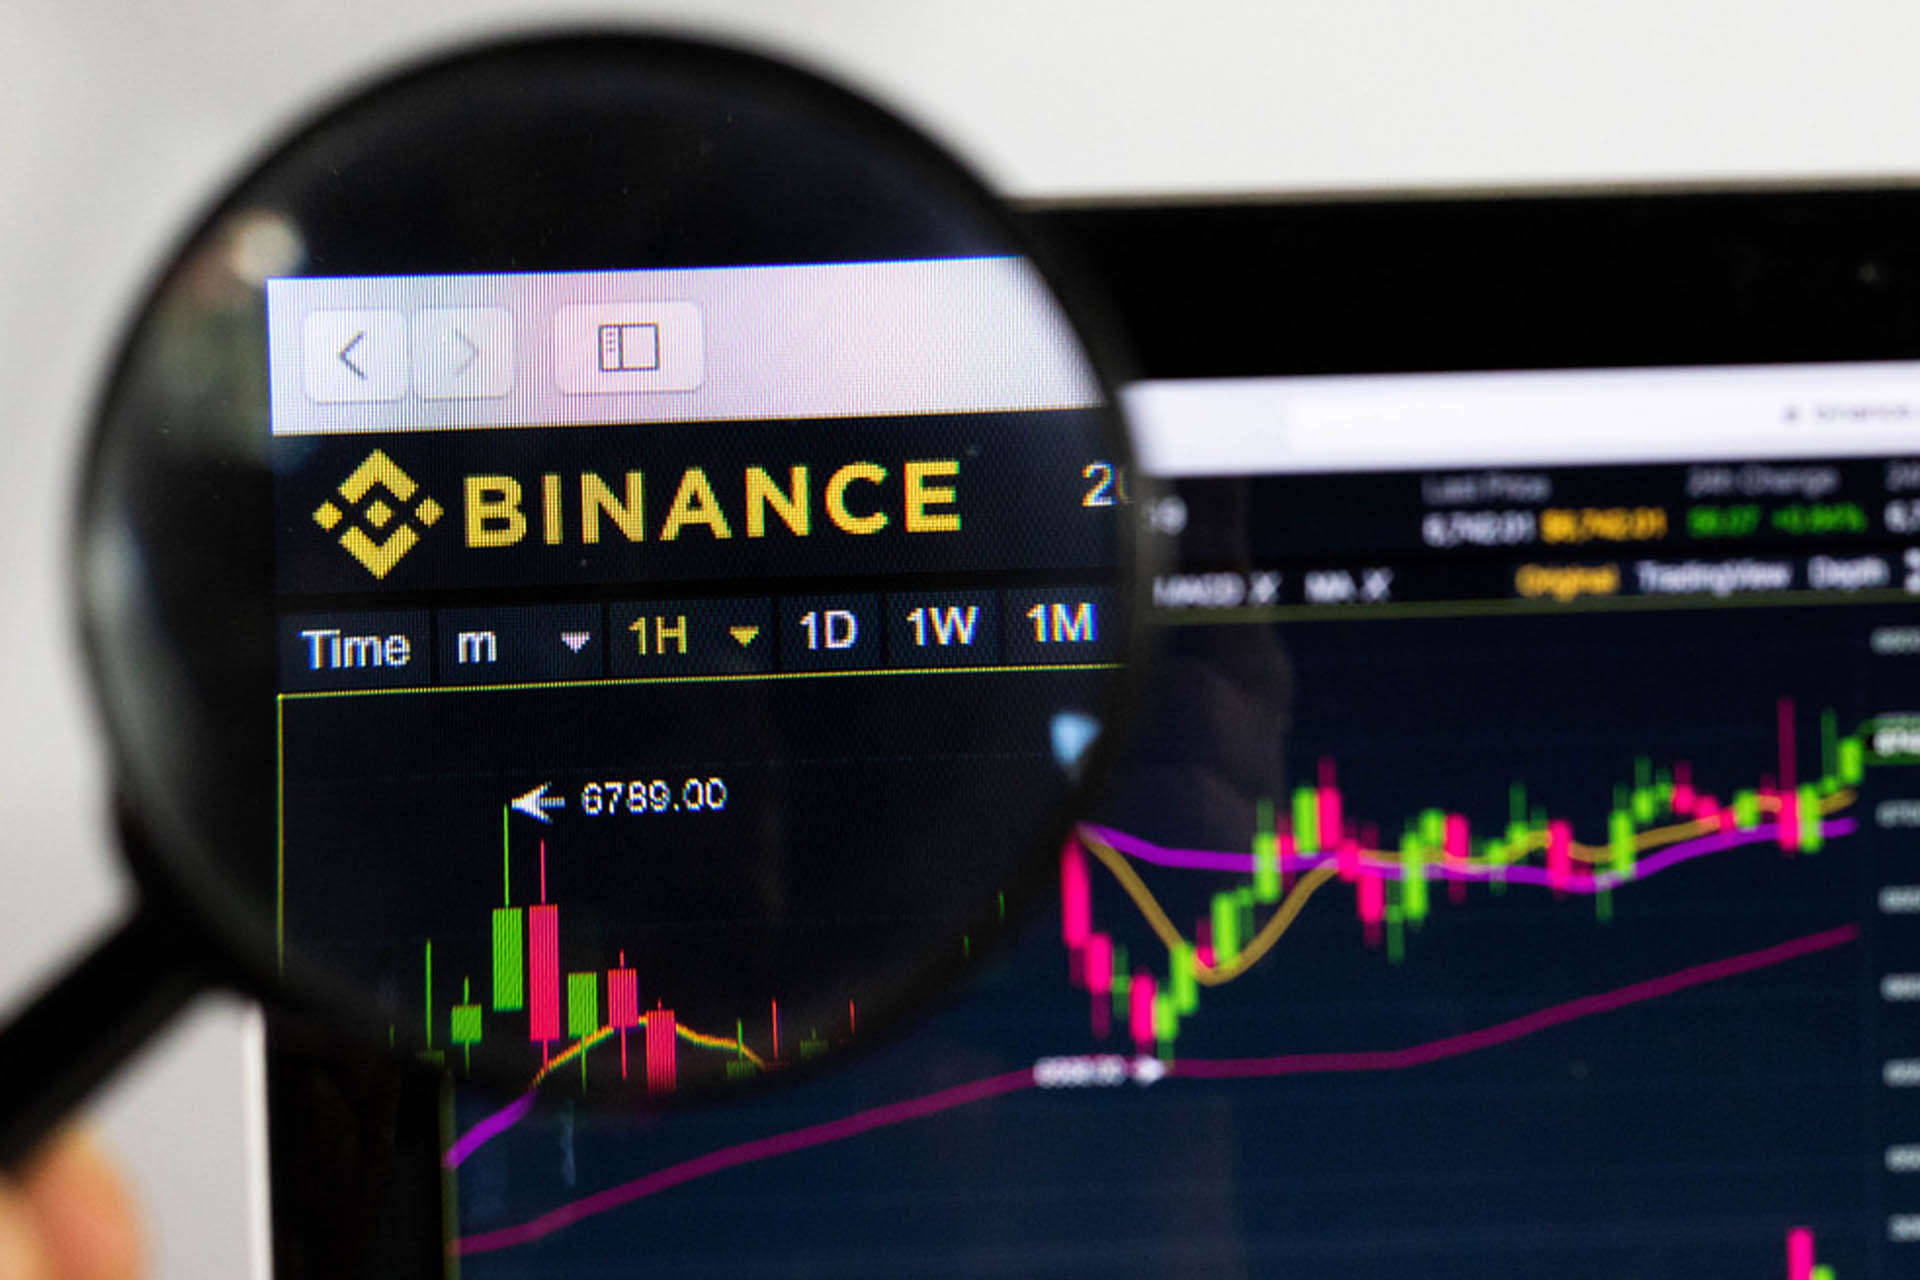 Binance brings out platform for farming new assets